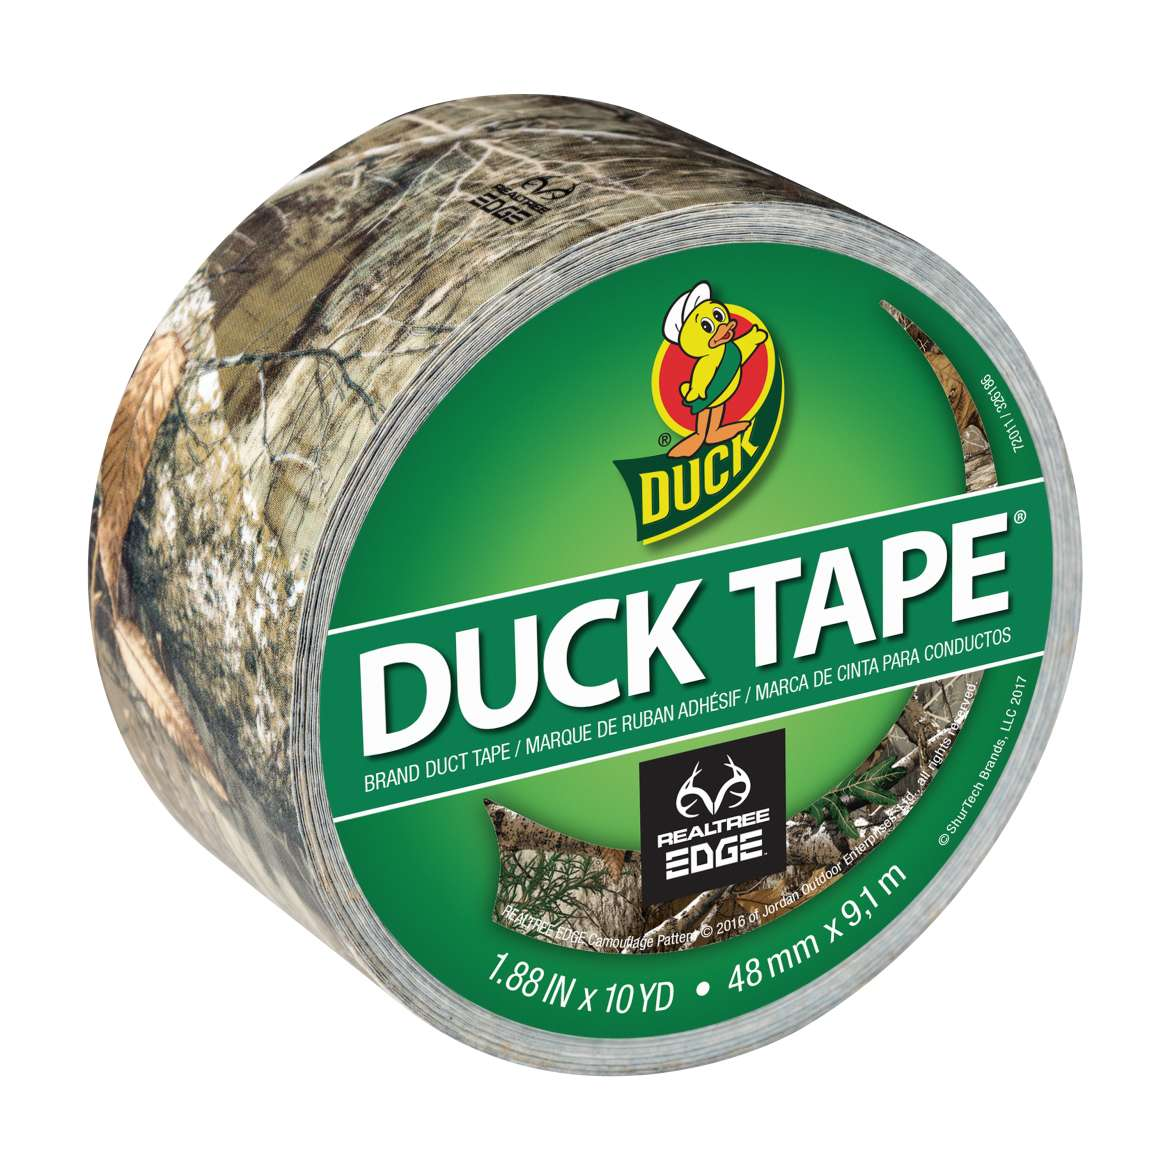 Realtree Edge™ Camo Duck Tape® Brand Duct Tape, 1.88 in. X 10 yd. Image